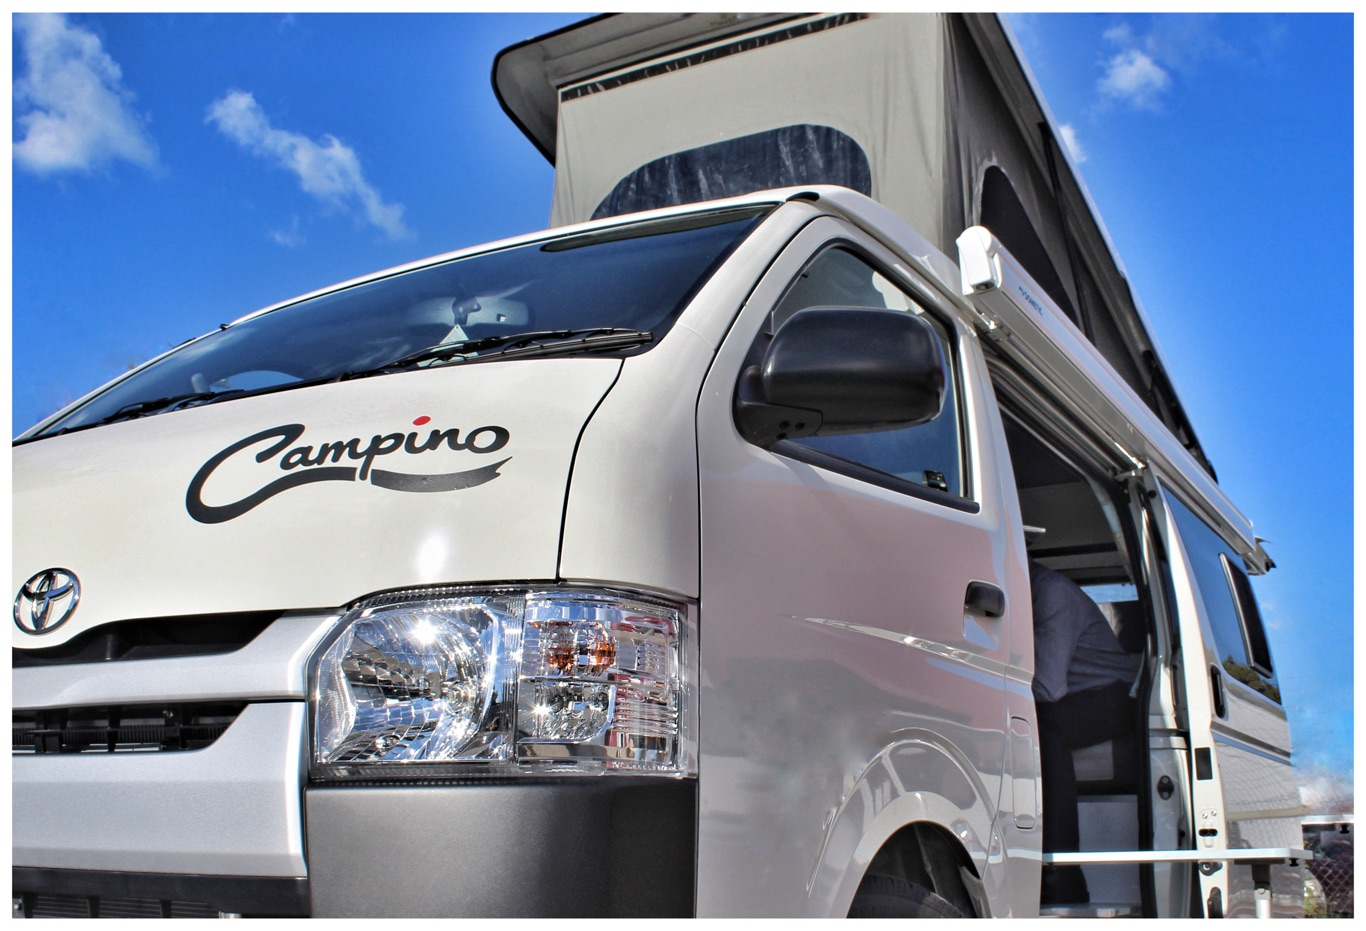 spacious, with internal standing ehight of 2.3m in the front area